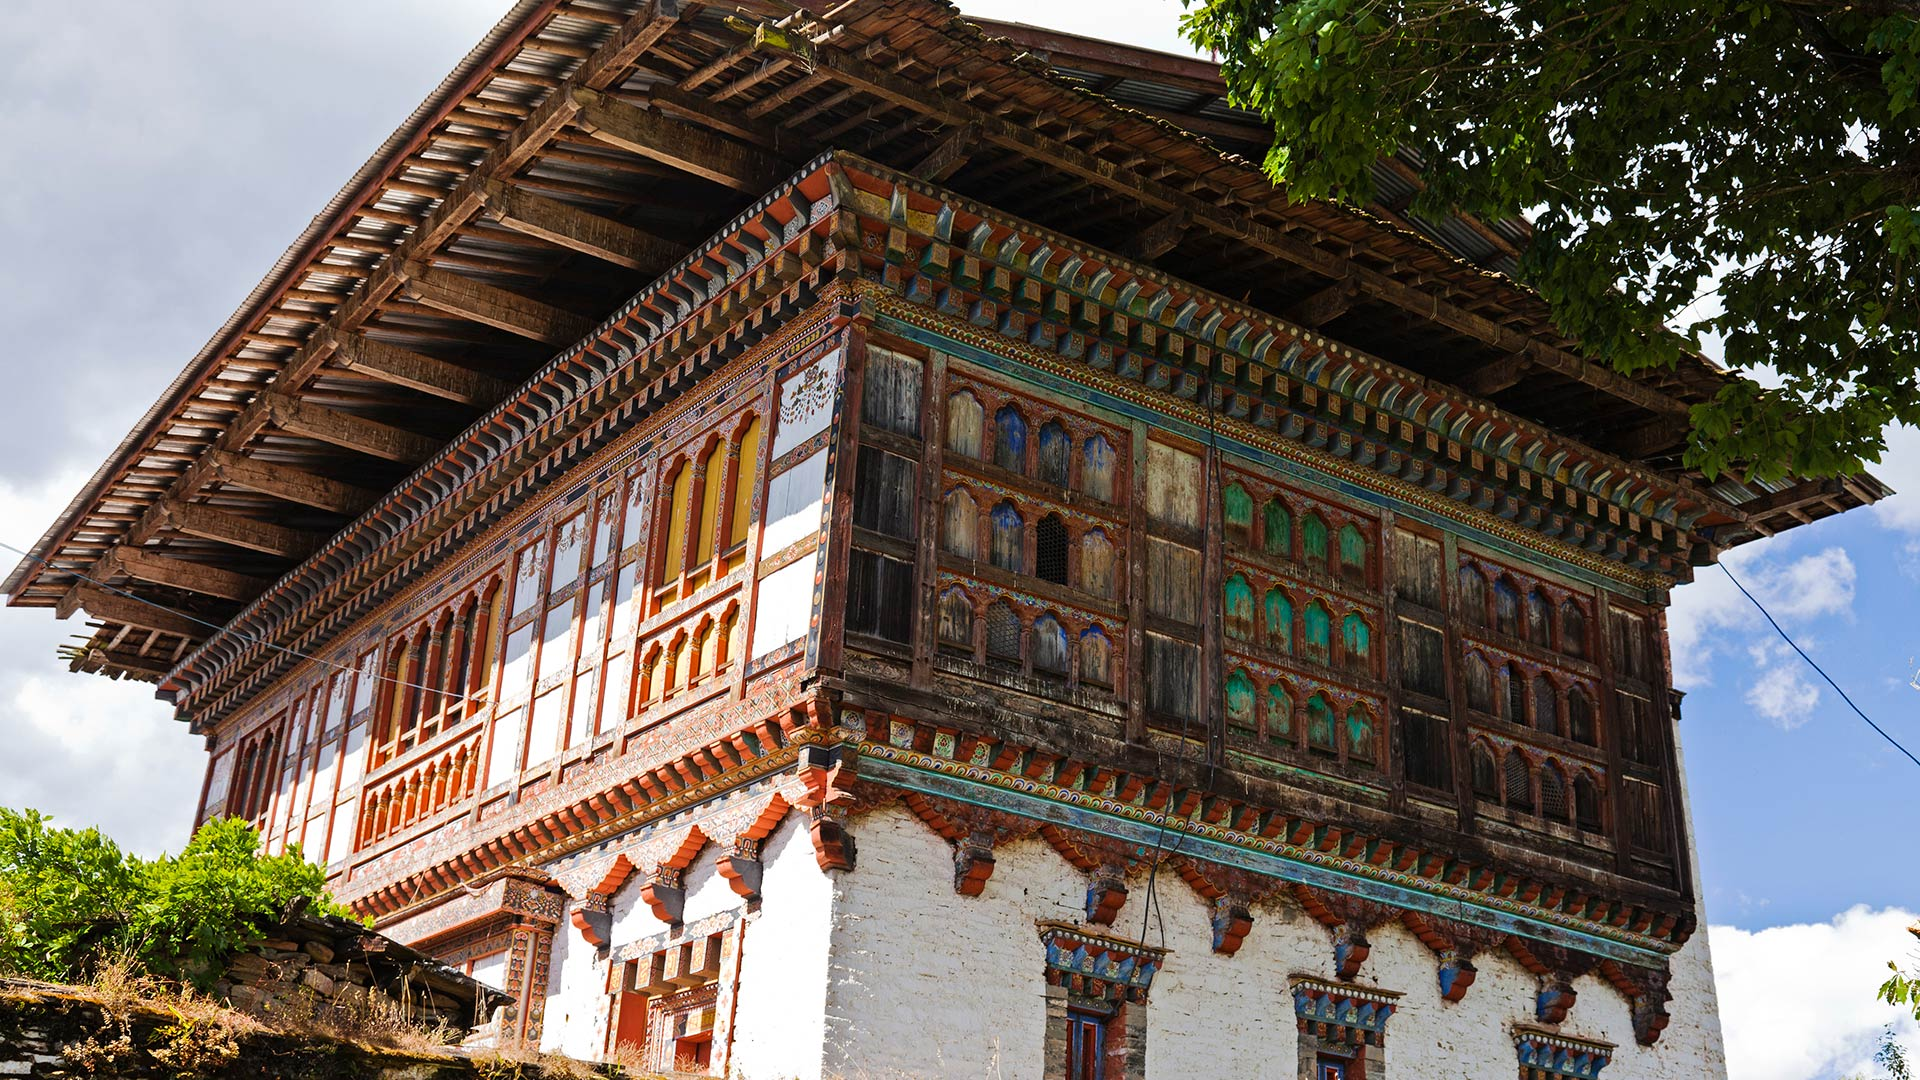 The 16th century Ugyencholing Palace, an ancient manor house turned local museum in central Bhutan